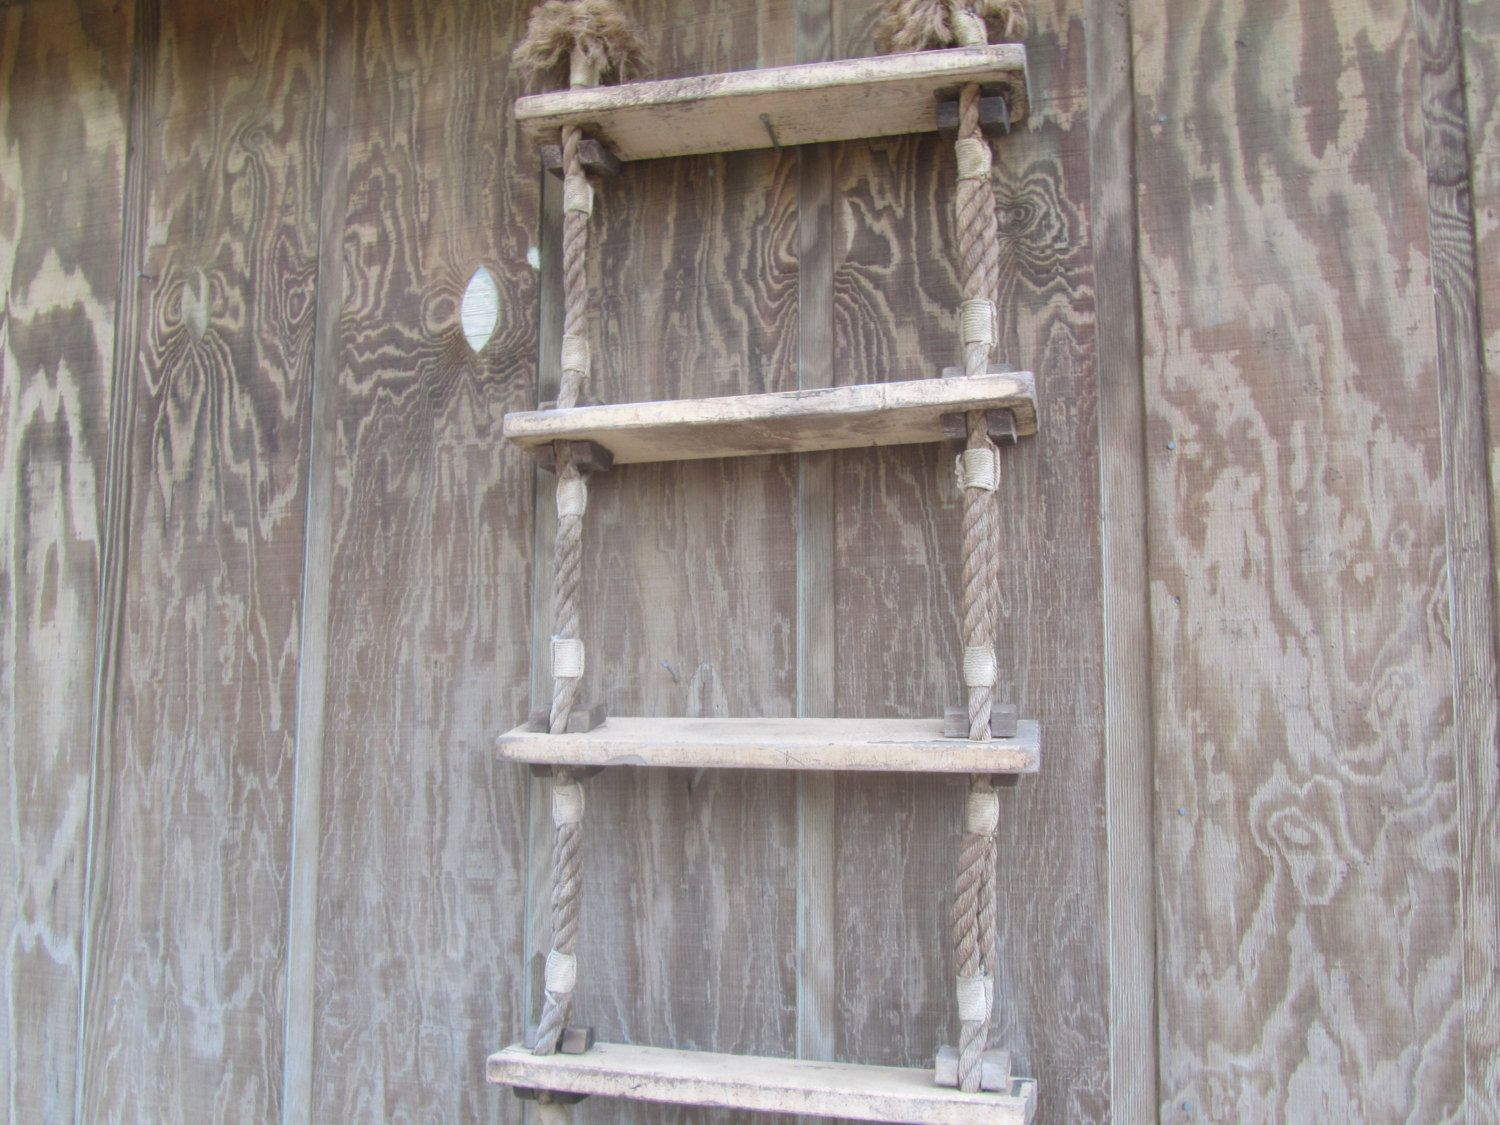 Vintage ladder rope ladder wall shelf boat ladder display vintage ladder rope ladder wall shelf boat ladder display shelf wall amipublicfo Gallery